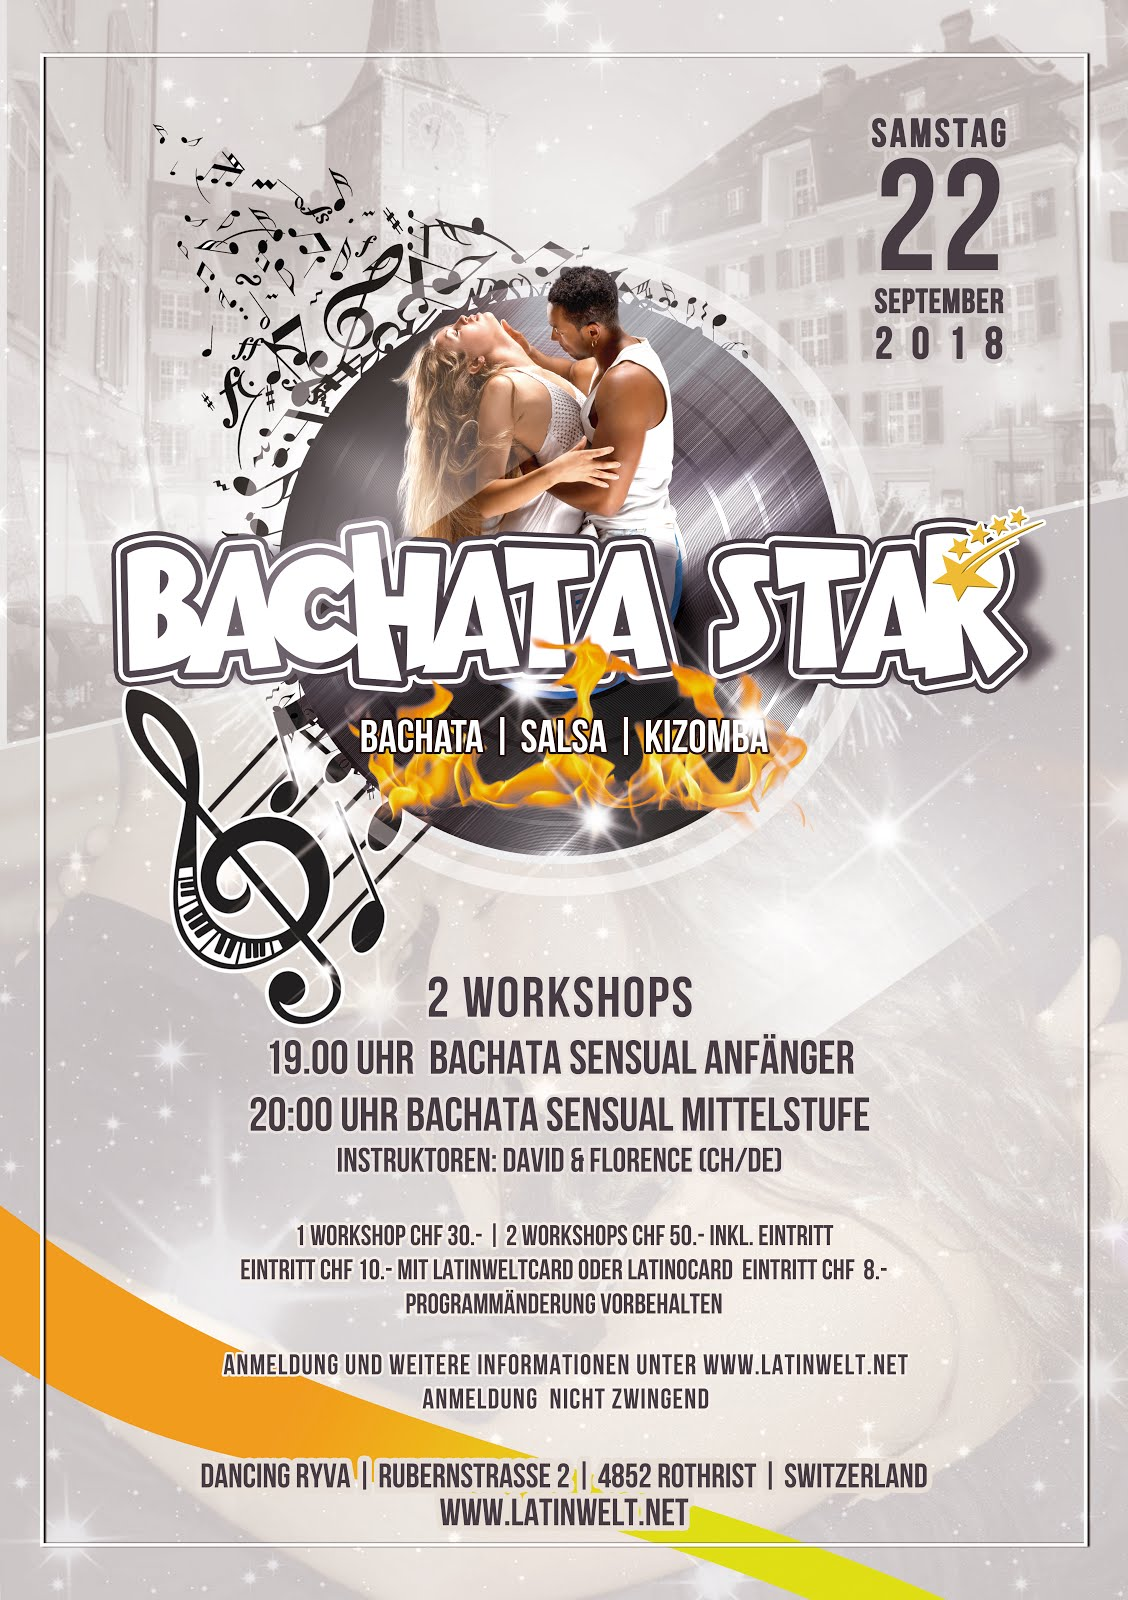 BACHATA STAR 22. SEPTEMBER